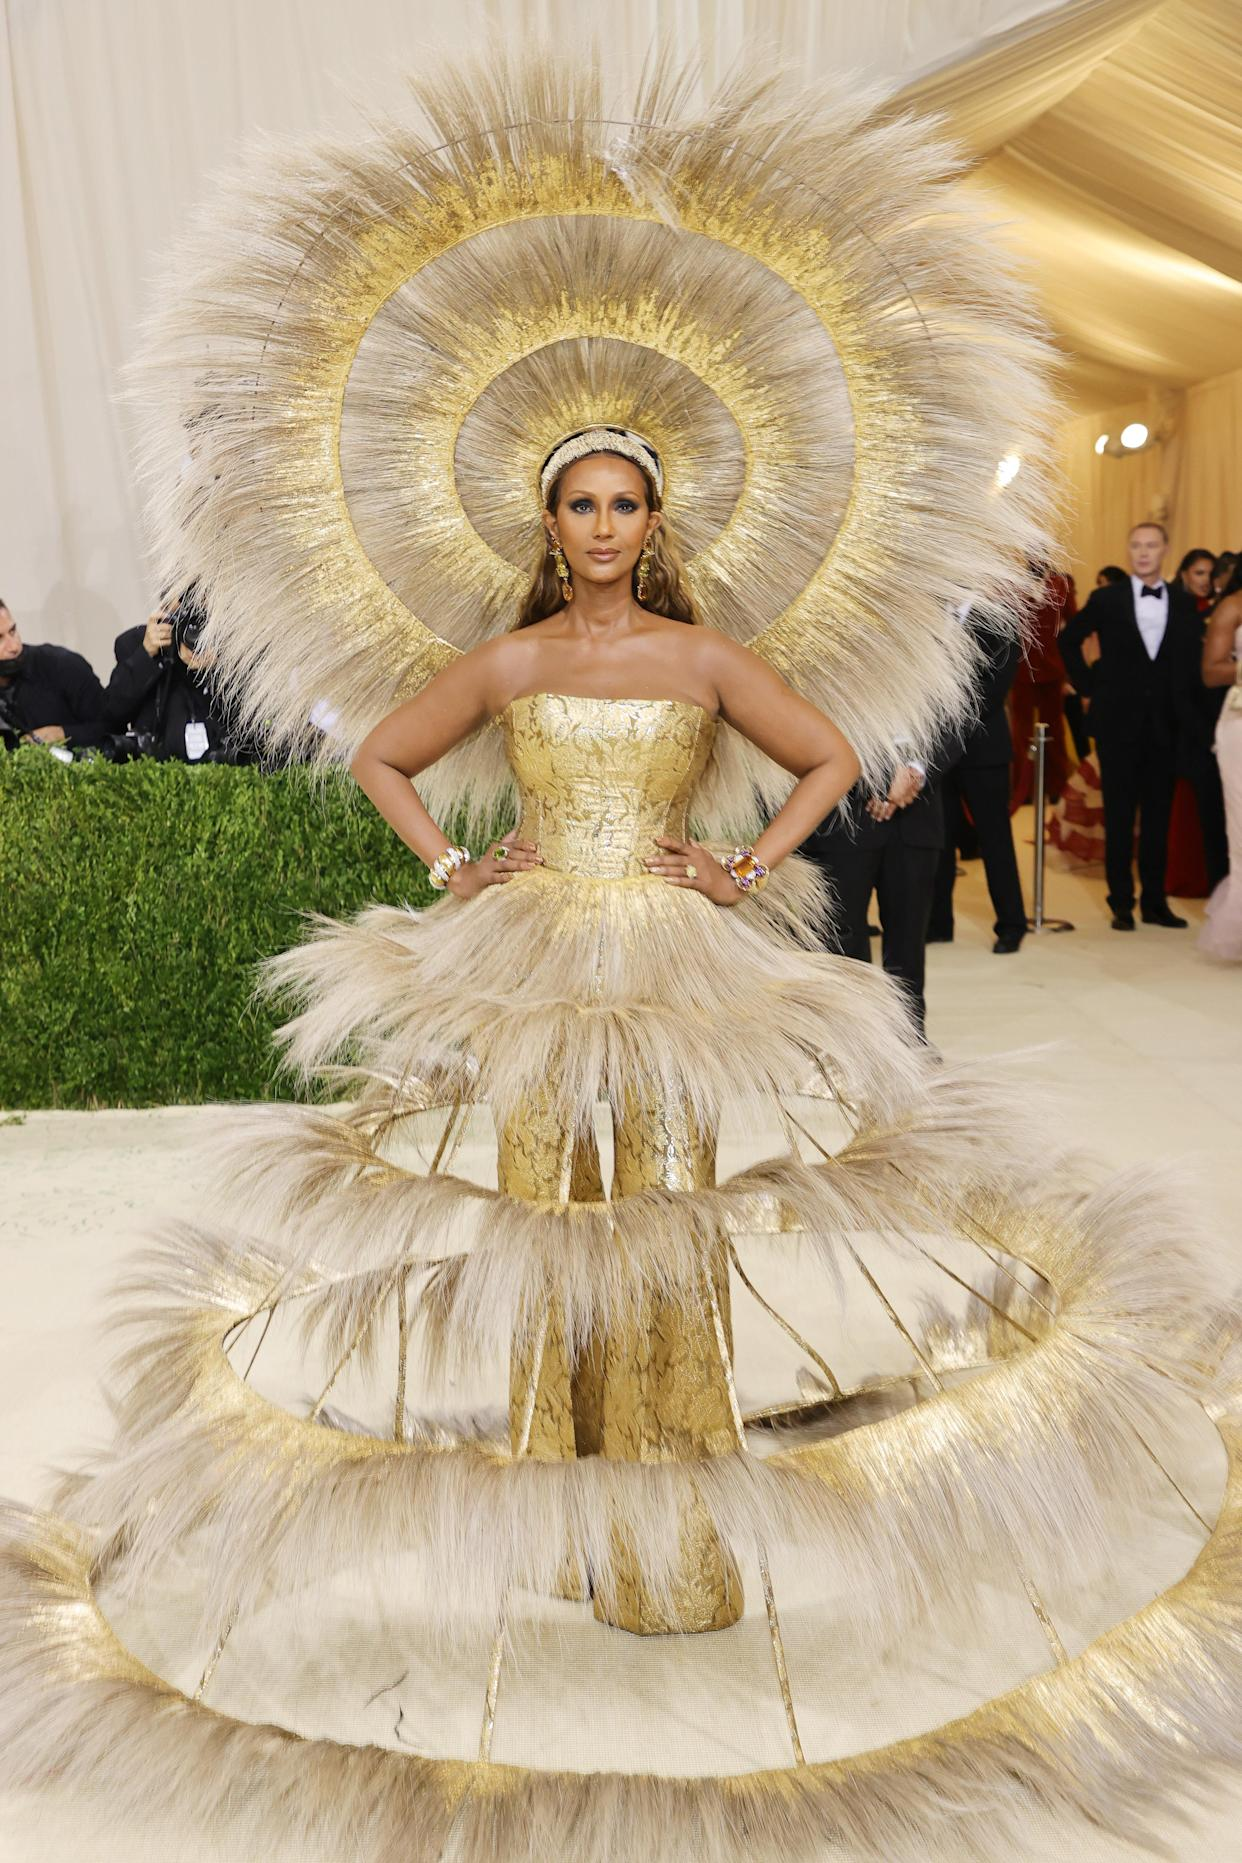 Iman attends The 2021 Met Gala Celebrating In America: A Lexicon Of Fashion at Metropolitan Museum of Art on September 13, 2021 in New York City. (Getty Images)